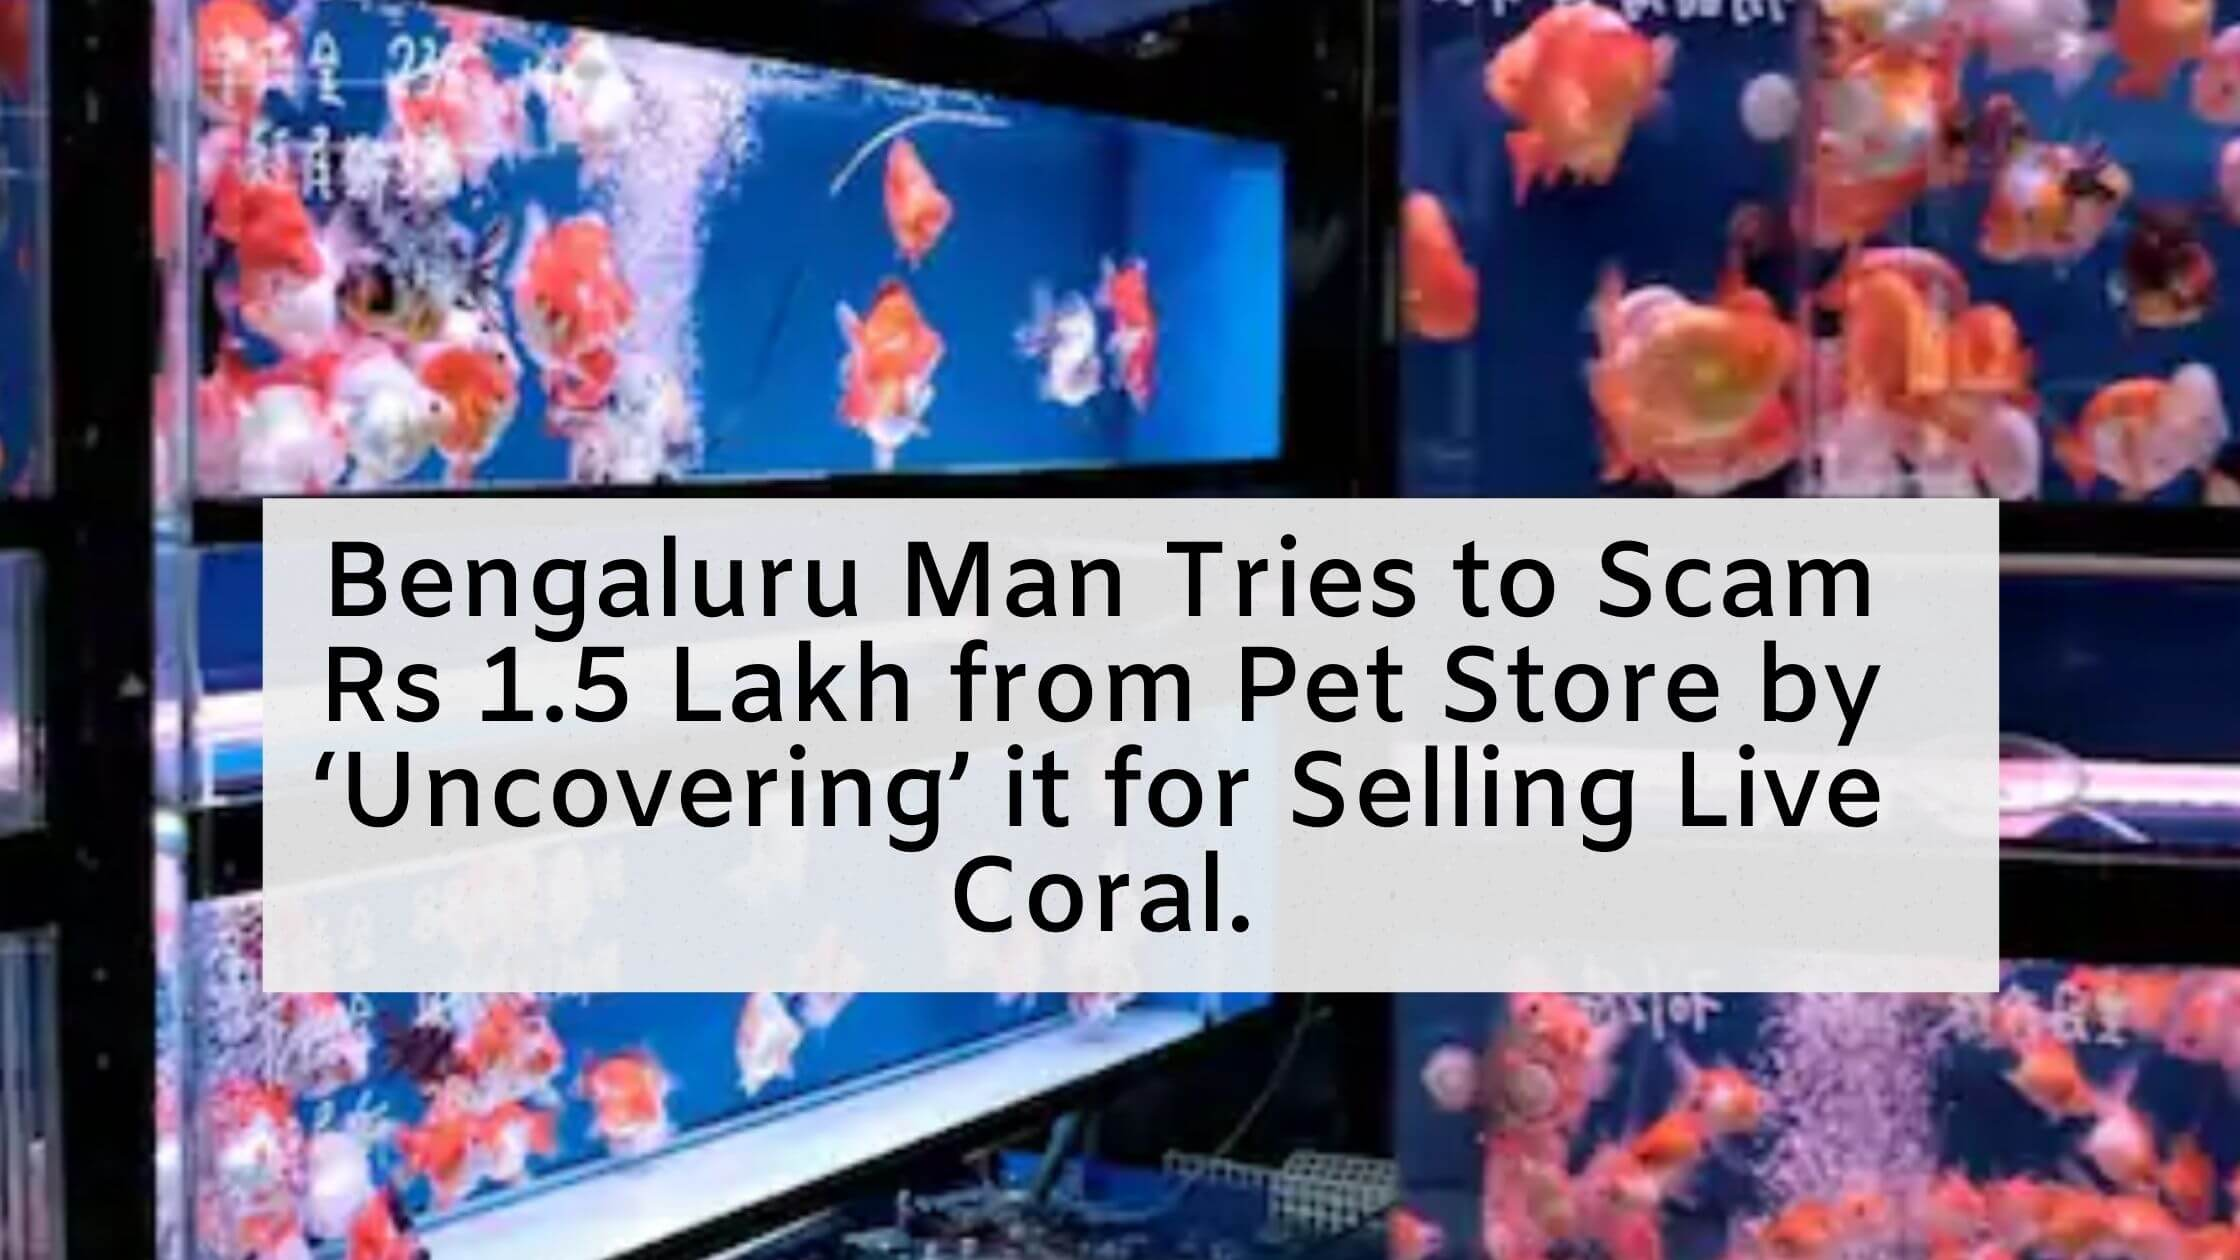 Bengaluru Man Tries to Scam Rs 1.5 Lakh from Pet Store by 'Uncovering' it for Selling Live Coral.